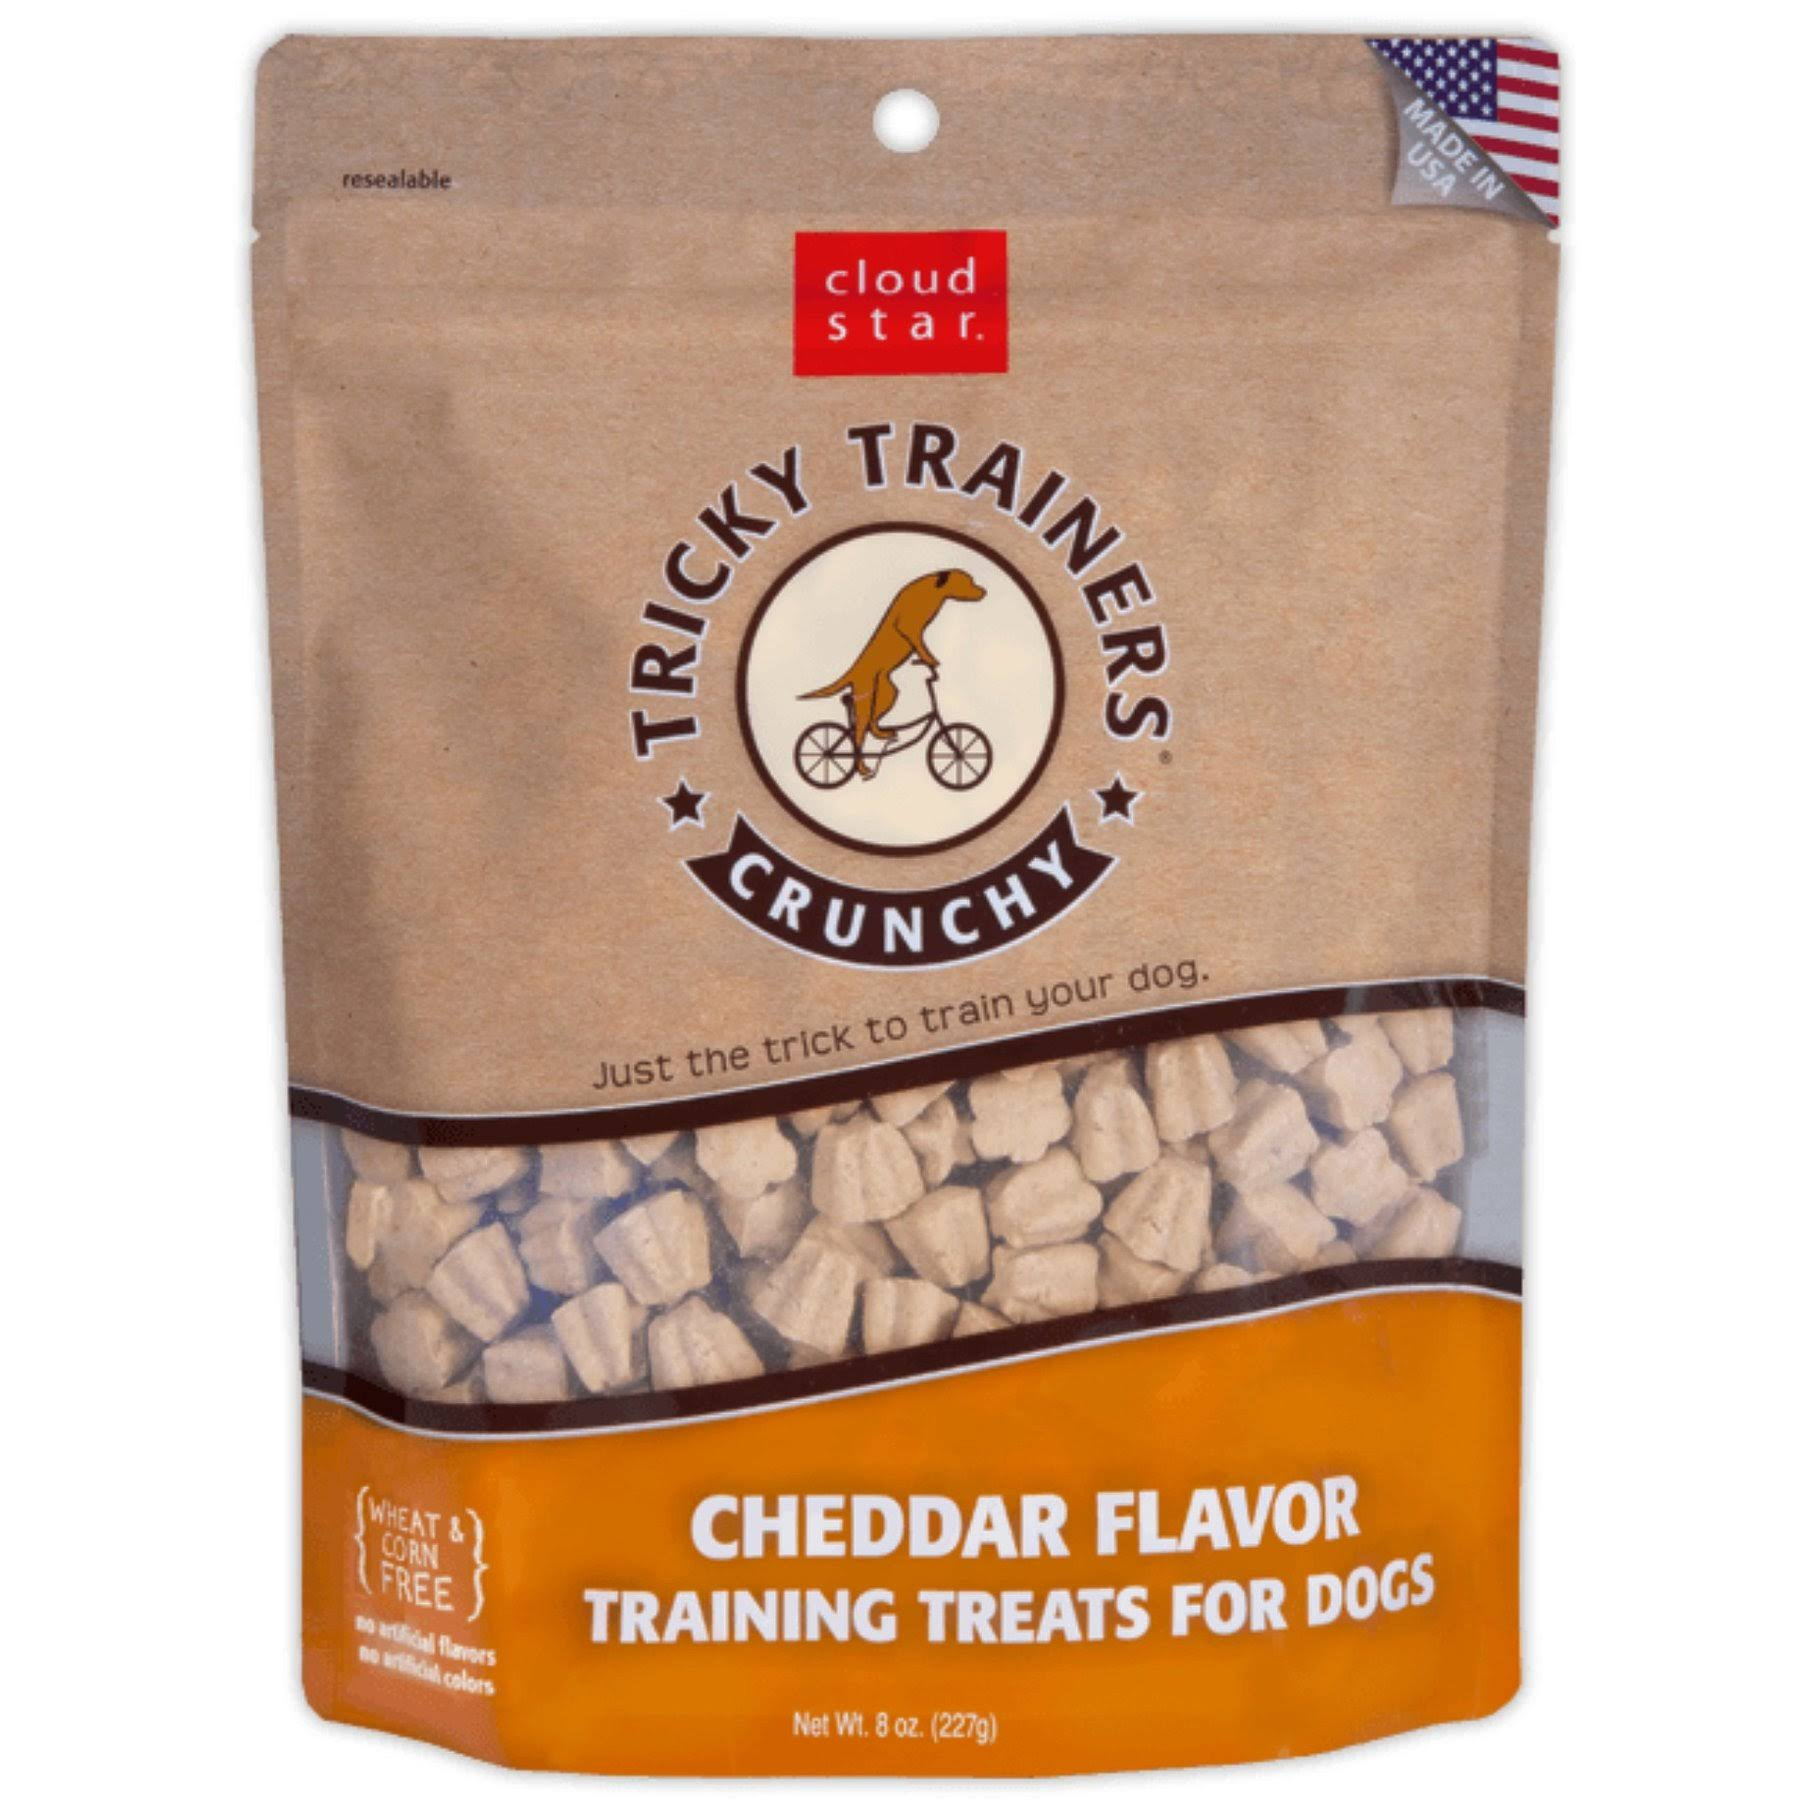 Cloud Star Crunchy Cheddar Tricky Trainers Dog Treats, 8 oz